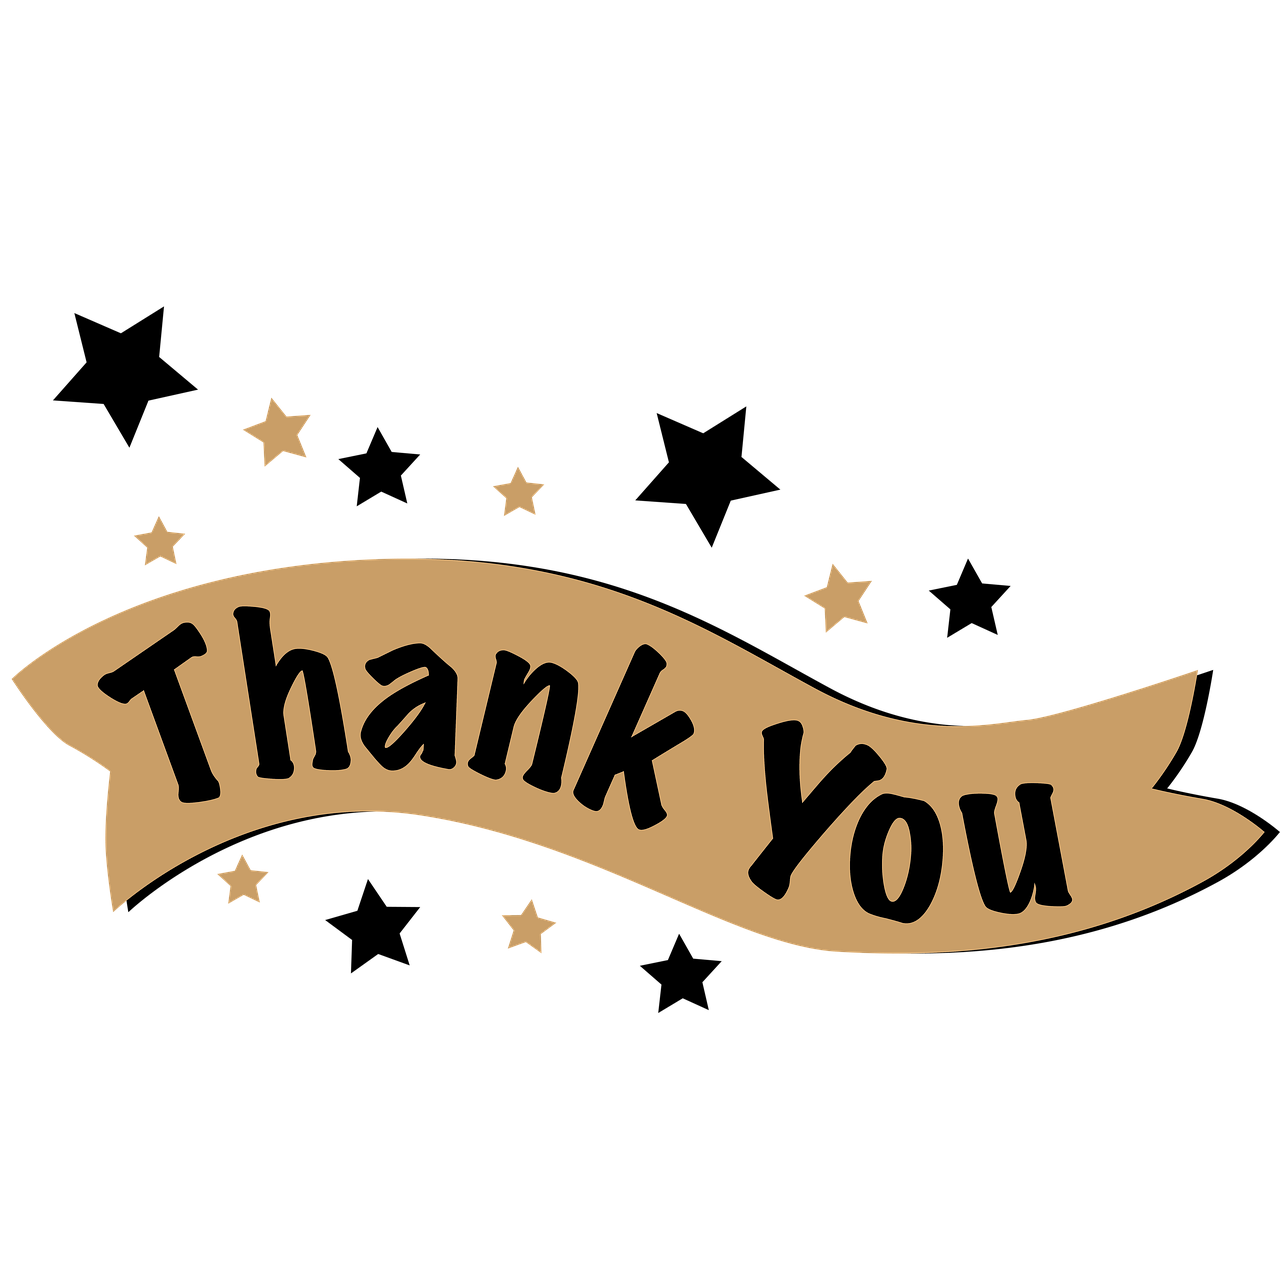 Download Free Photo Of Lettering Thank You Ornament Banner Free Pictures From Needpix Com